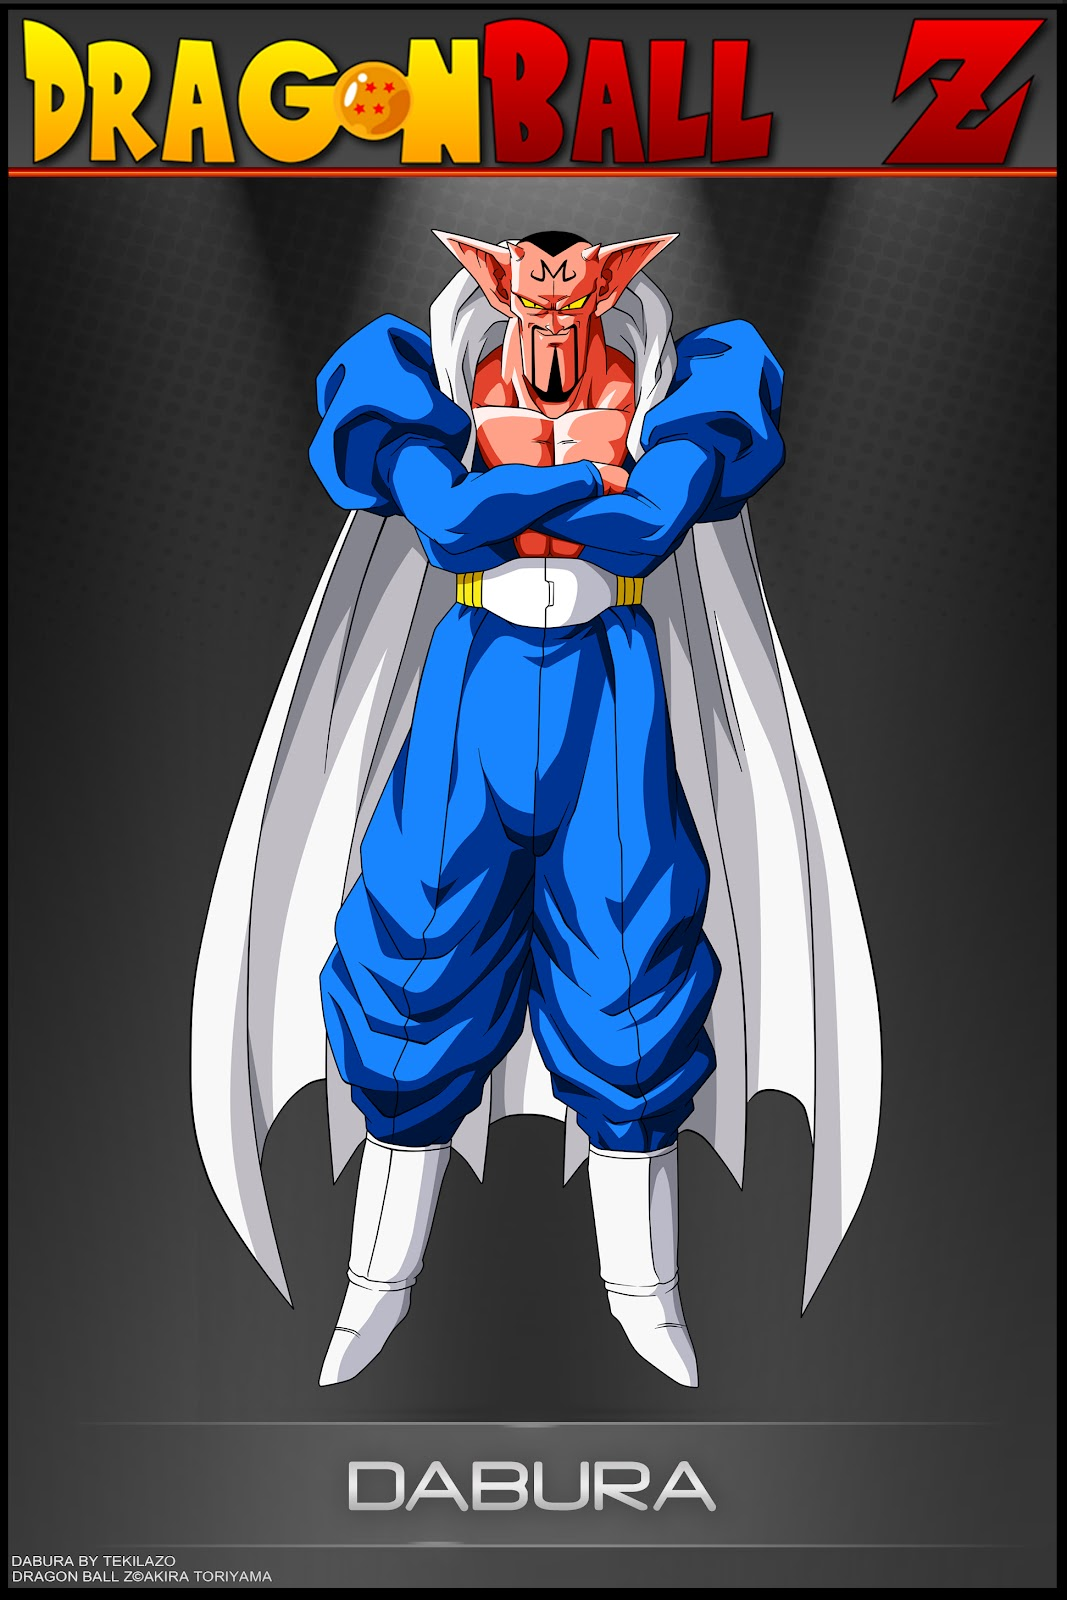 Dragon ball z wallpapers dabura - Dragon bale z ...